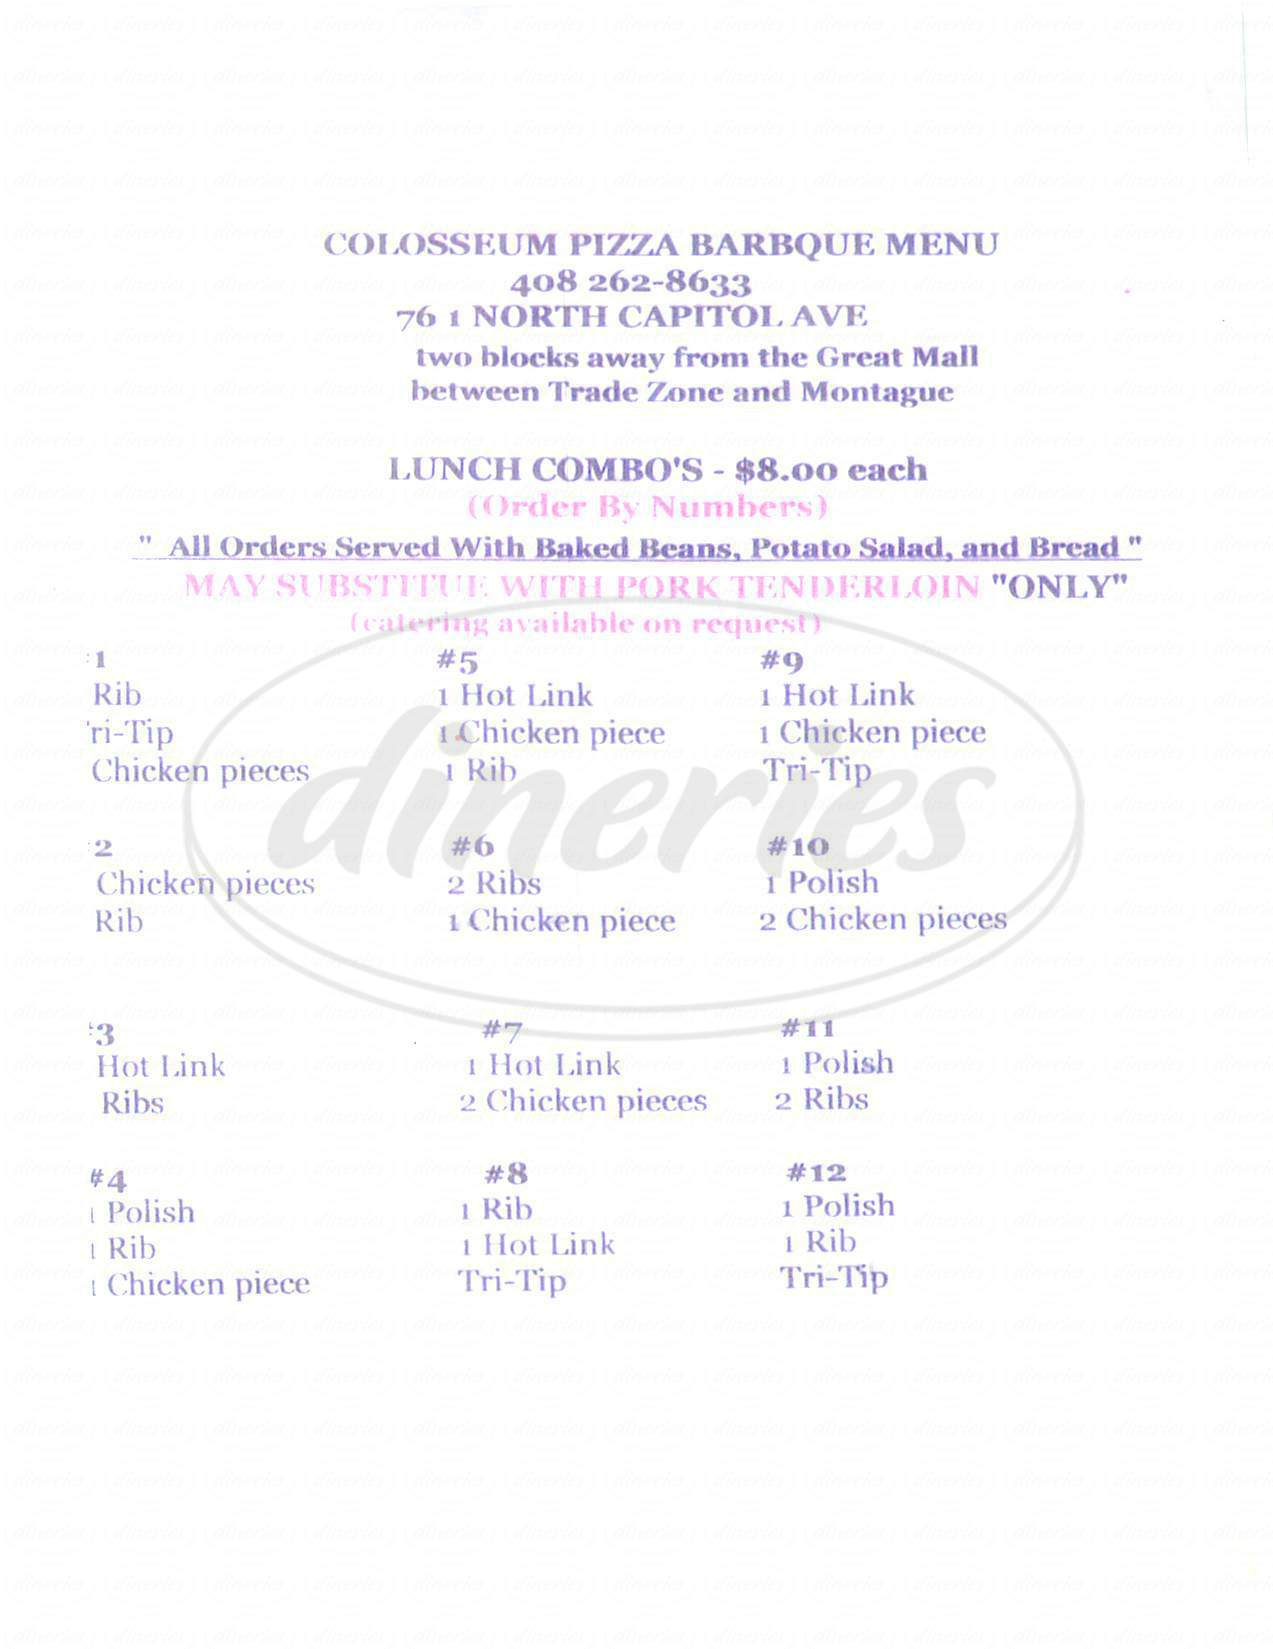 menu for Colosseum Pizza